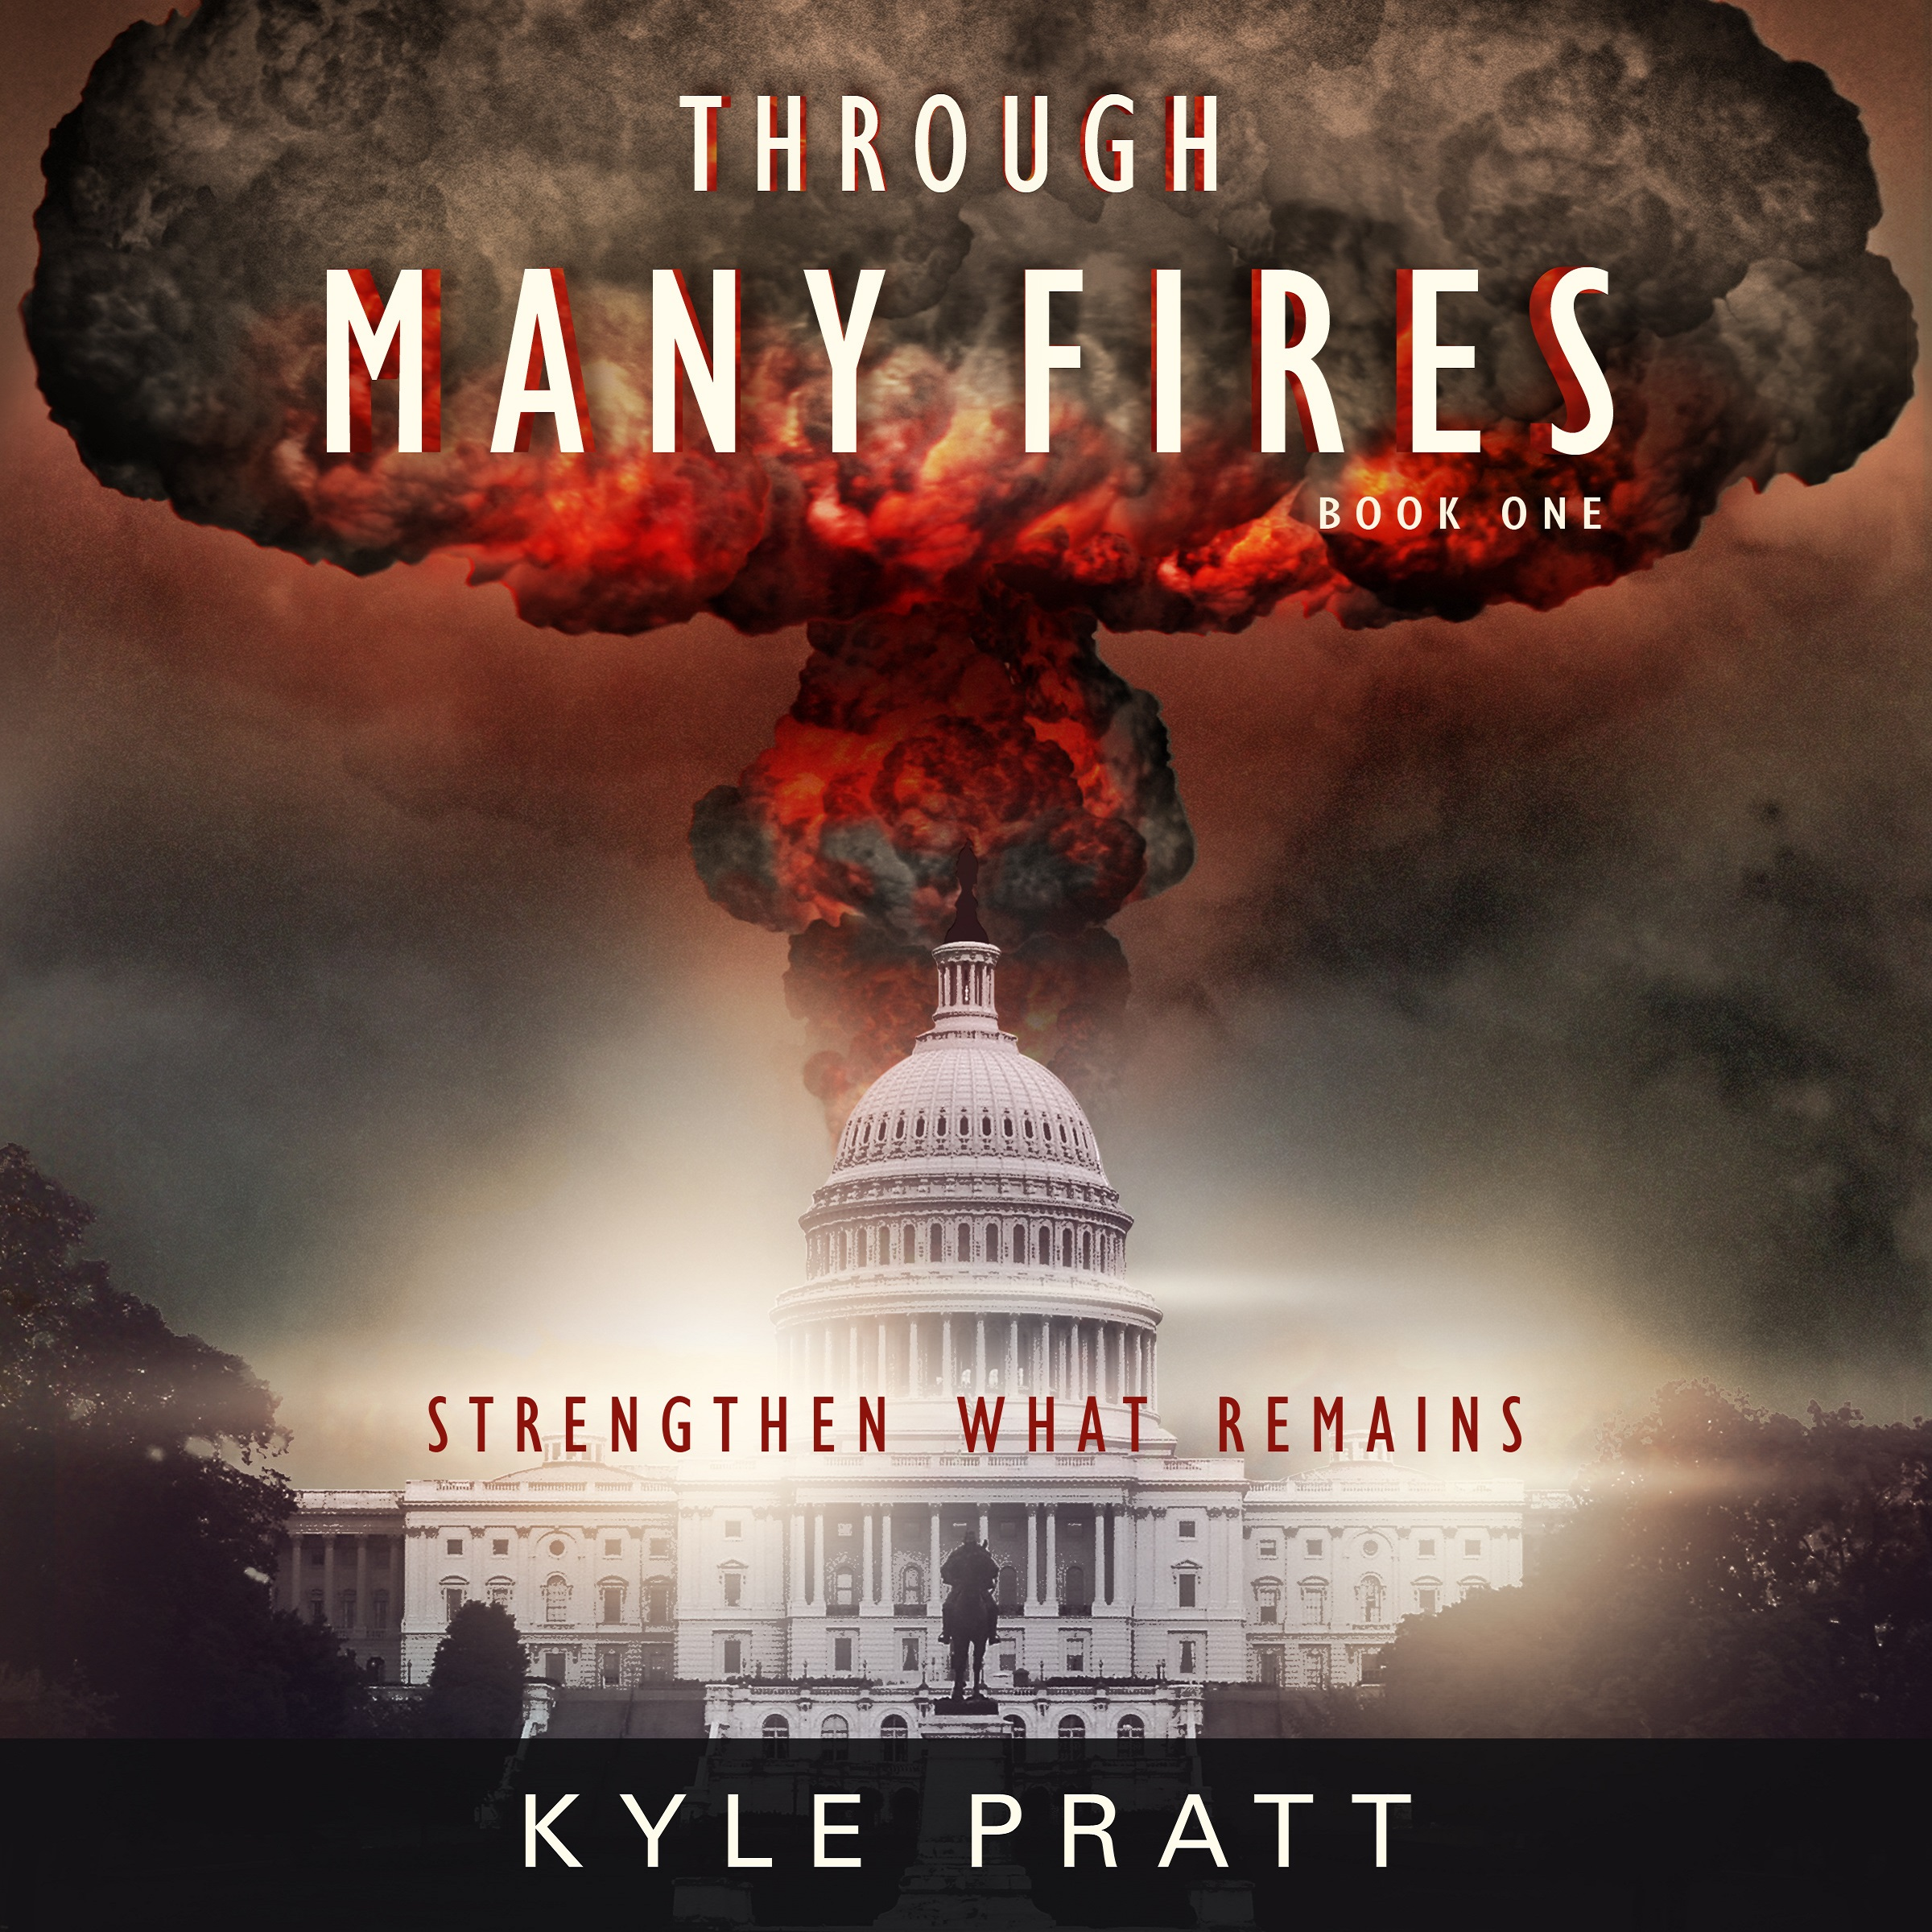 The audiobook cover of Through Many Fires